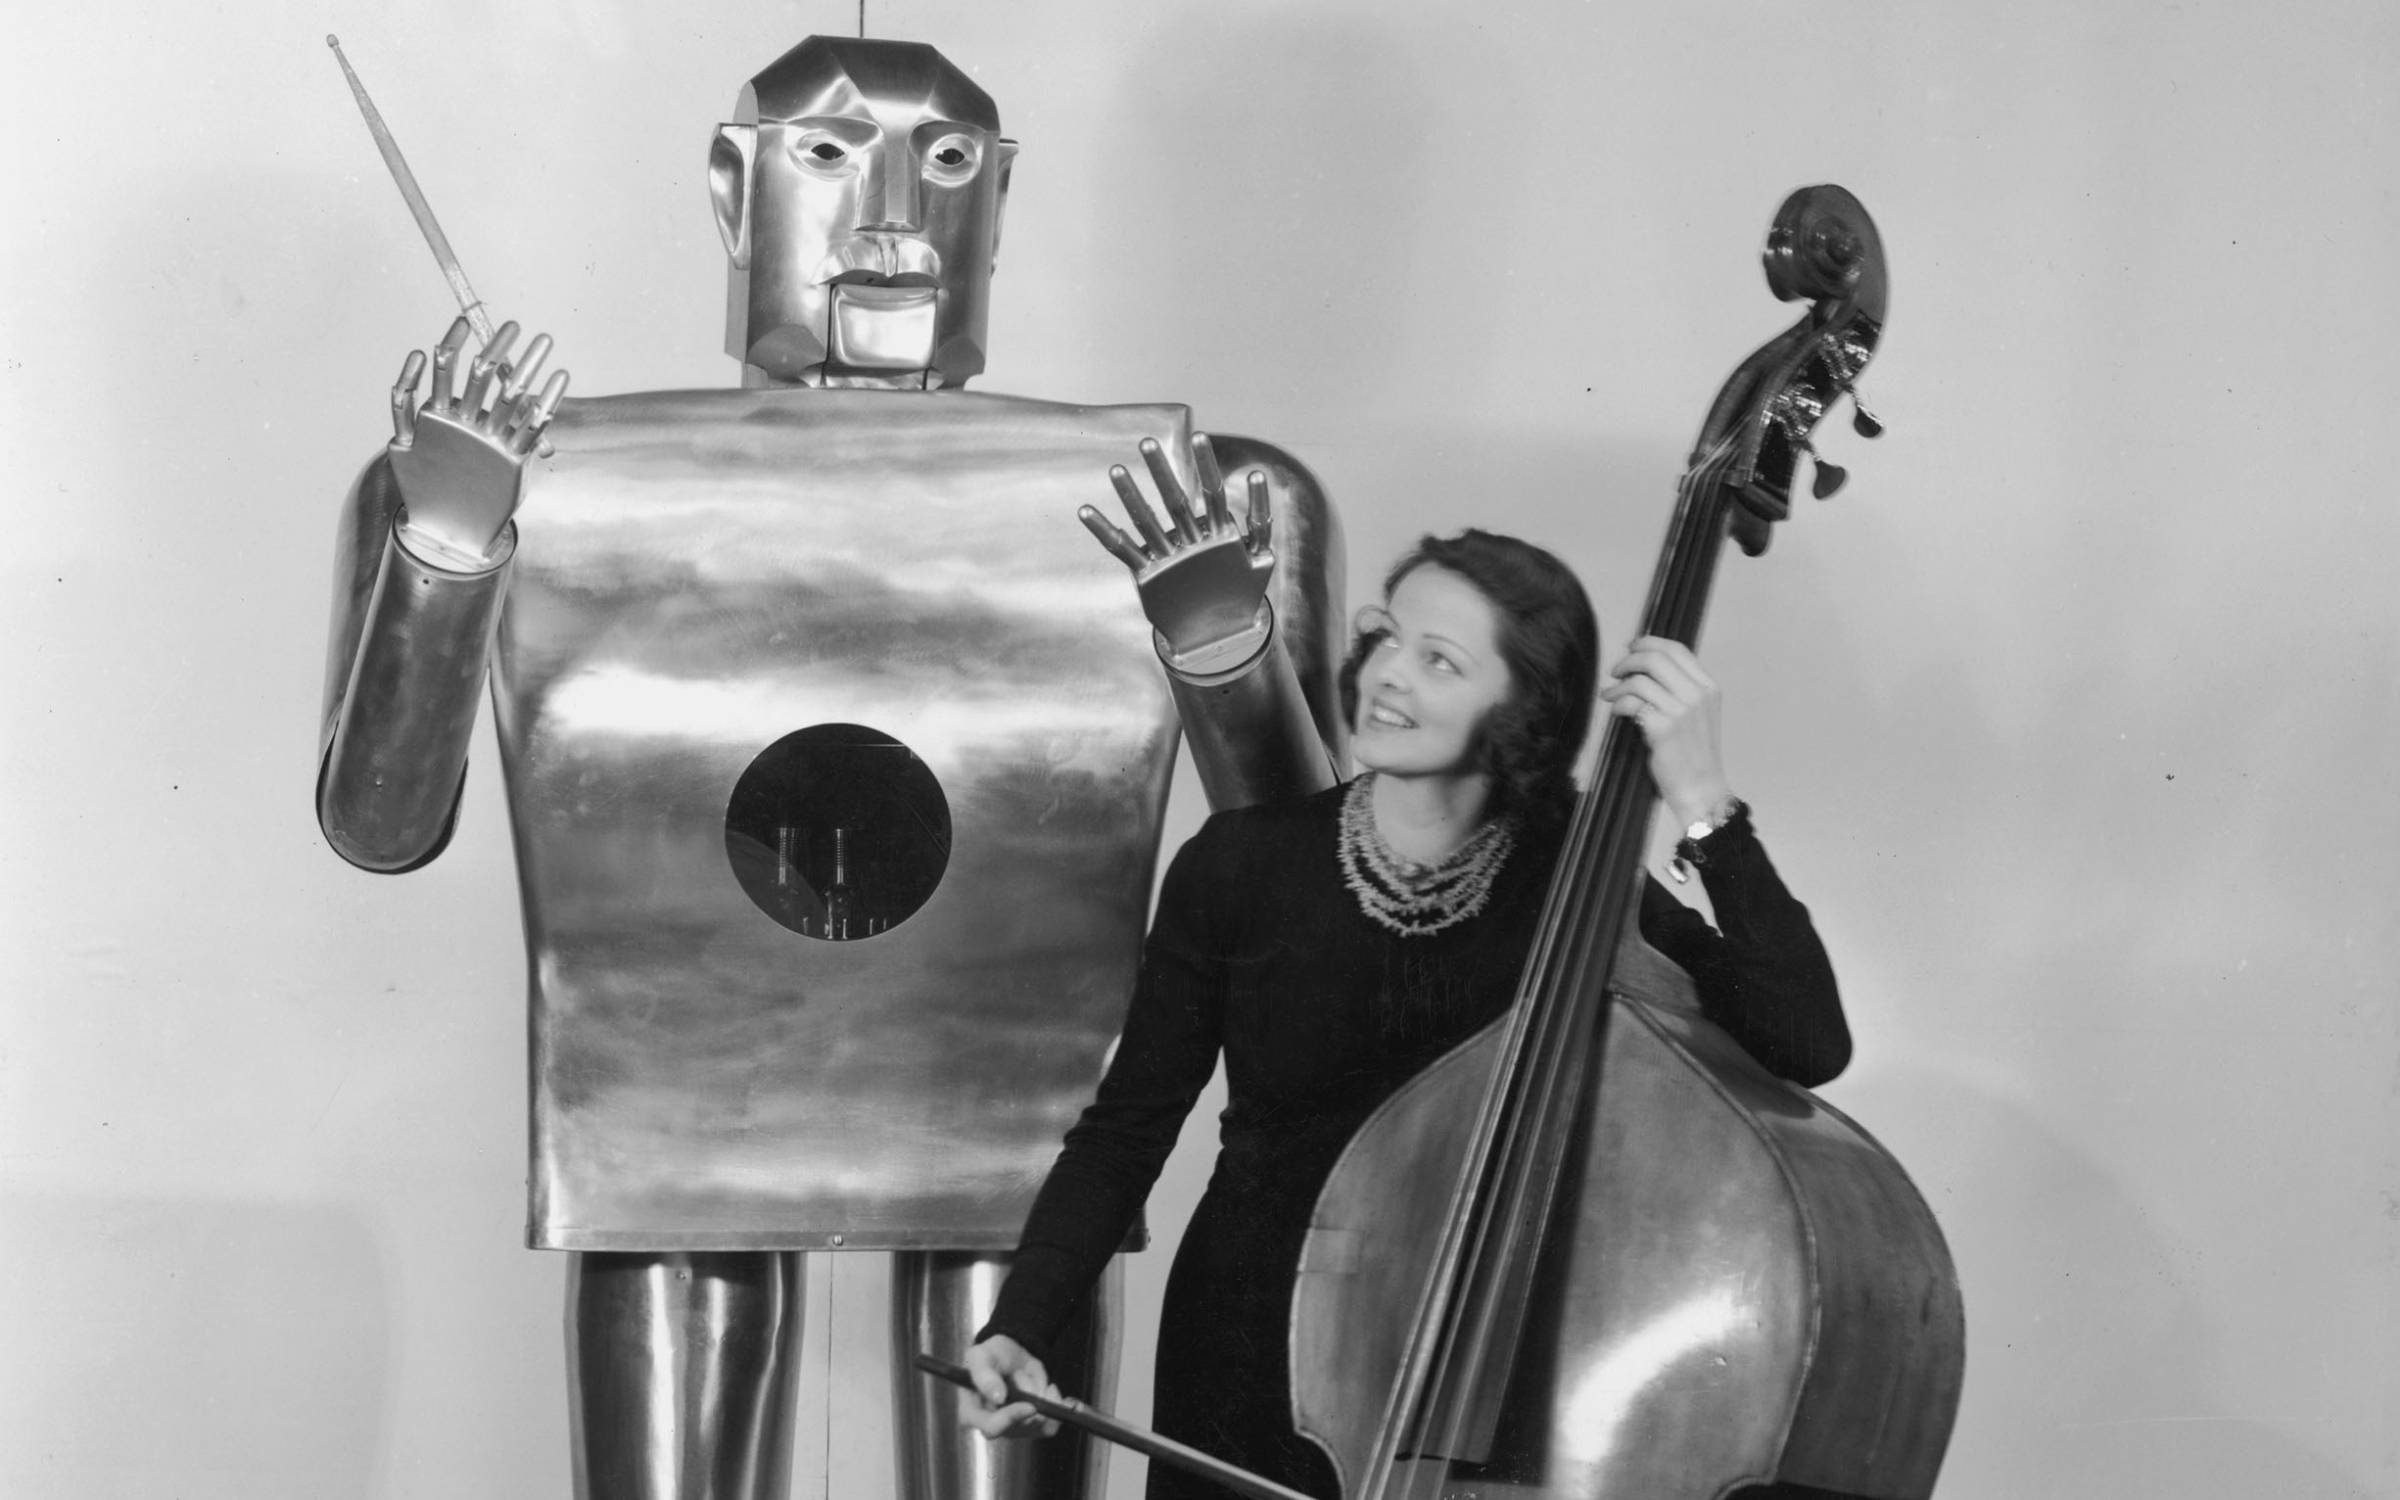 Musician Lois Kendall plays the cello while a mechanical man named Elektro 'conducts' on stage as part of a Westinghouse Electric and Manufacturing Co demonstration at the World's Fair, New York City, 1939. Credit: Hulton Archive/Getty Images